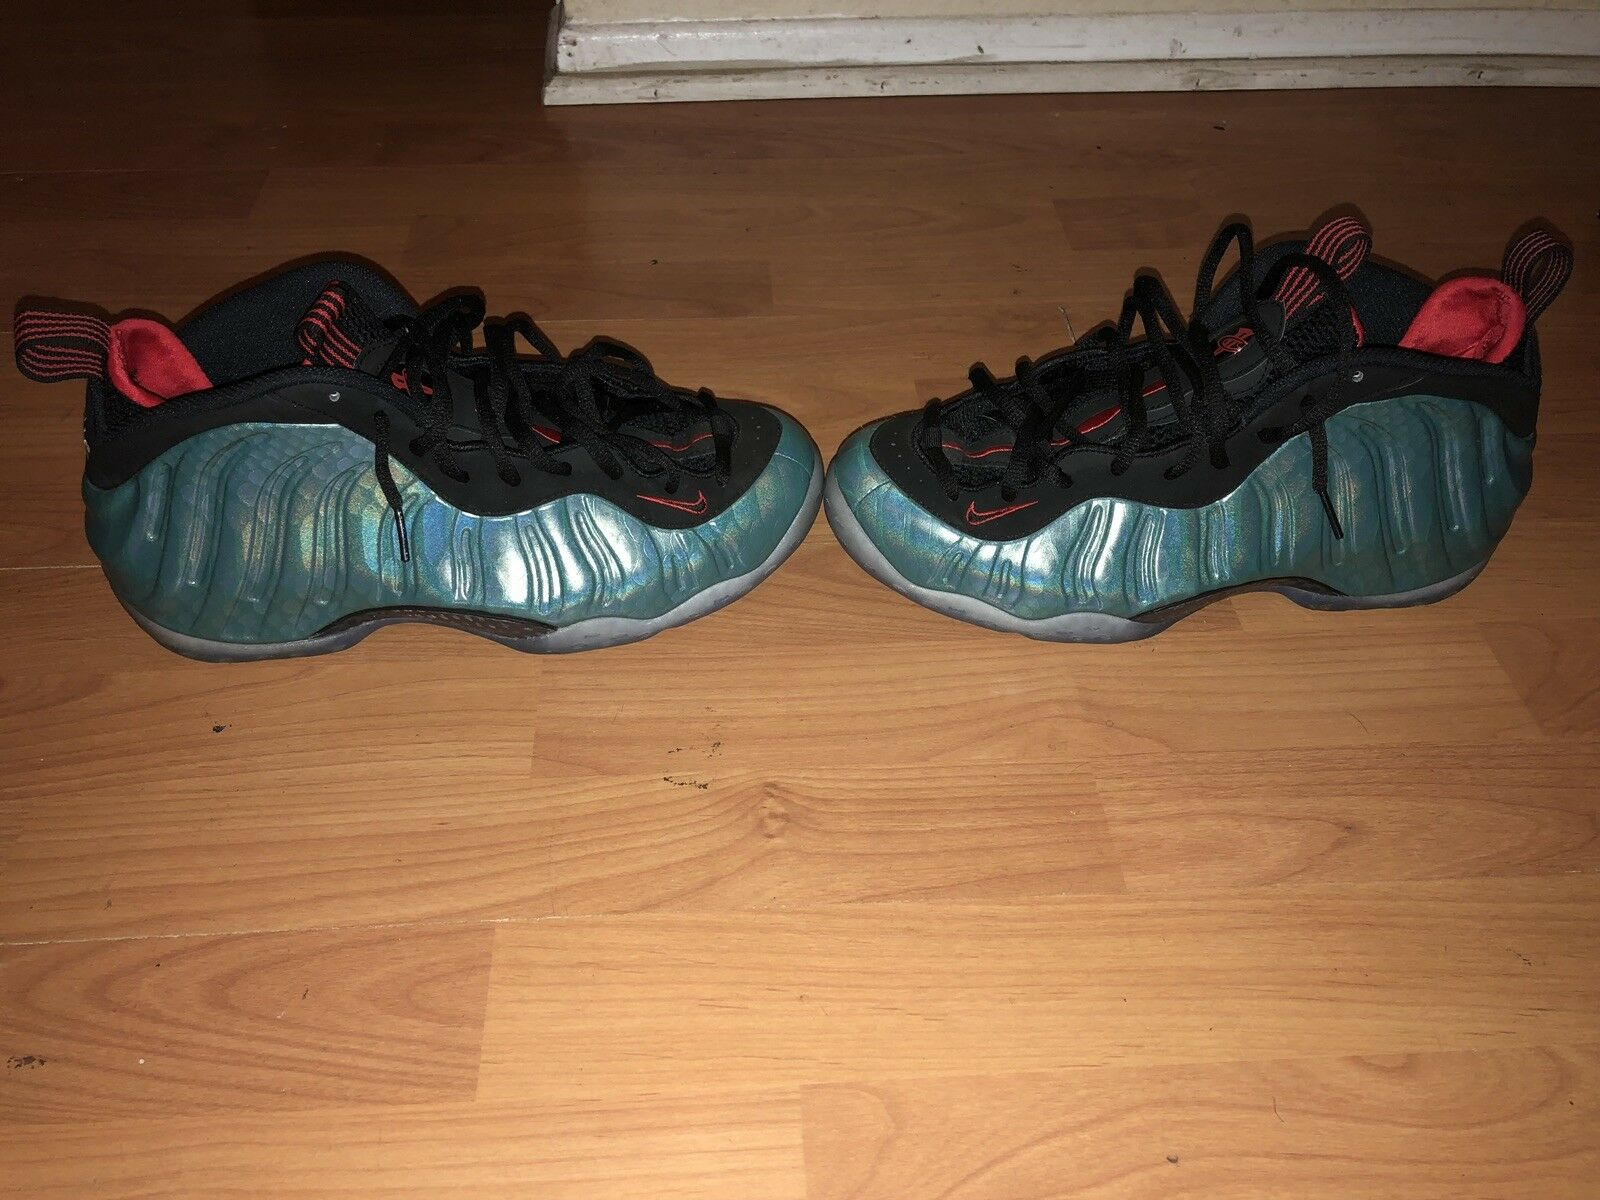 Nike Air Foamposite Gone Fishing Size 11 With Original Box And Netting